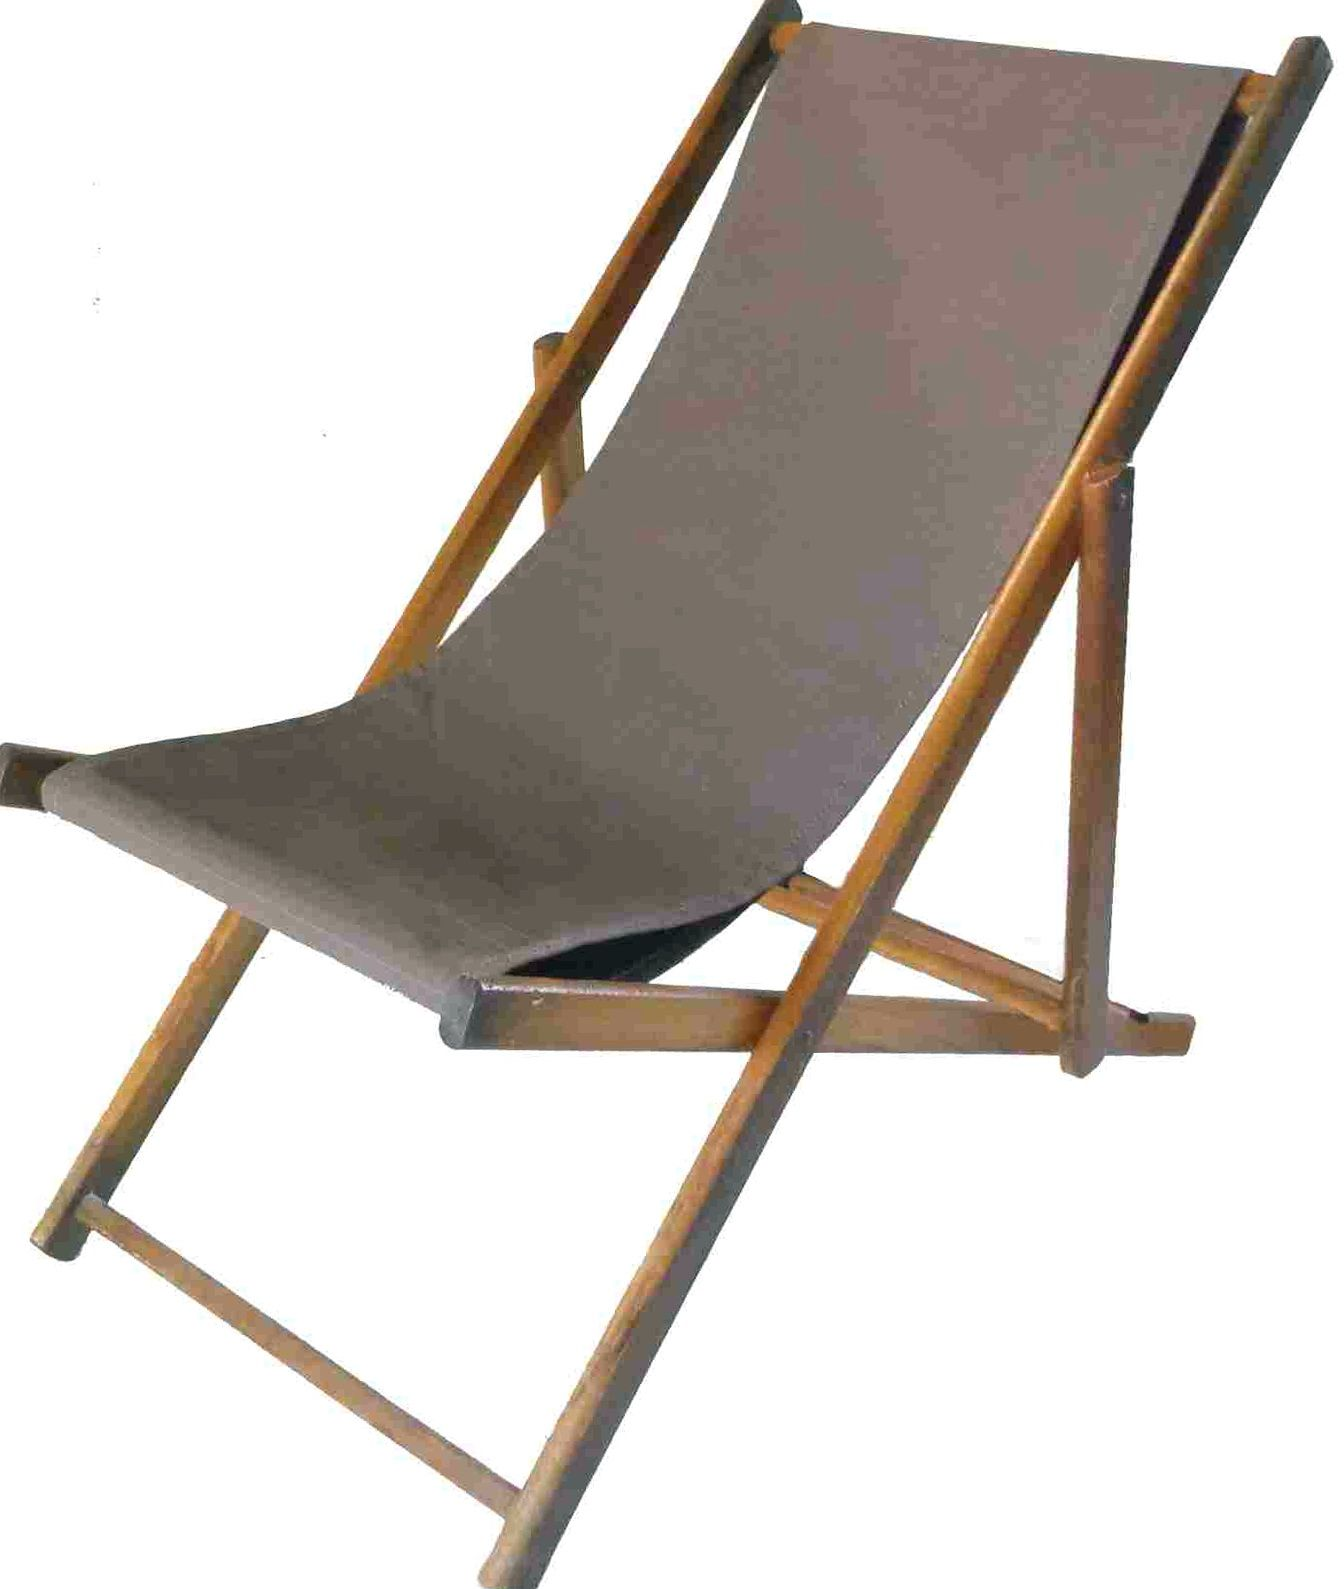 Deck Chair Covers Australia Http Www Theenergylibrary Com 23680 Deck Chair Covers Australia Utm Source Contentstudi Building A Deck Deck Chairs Chair Covers